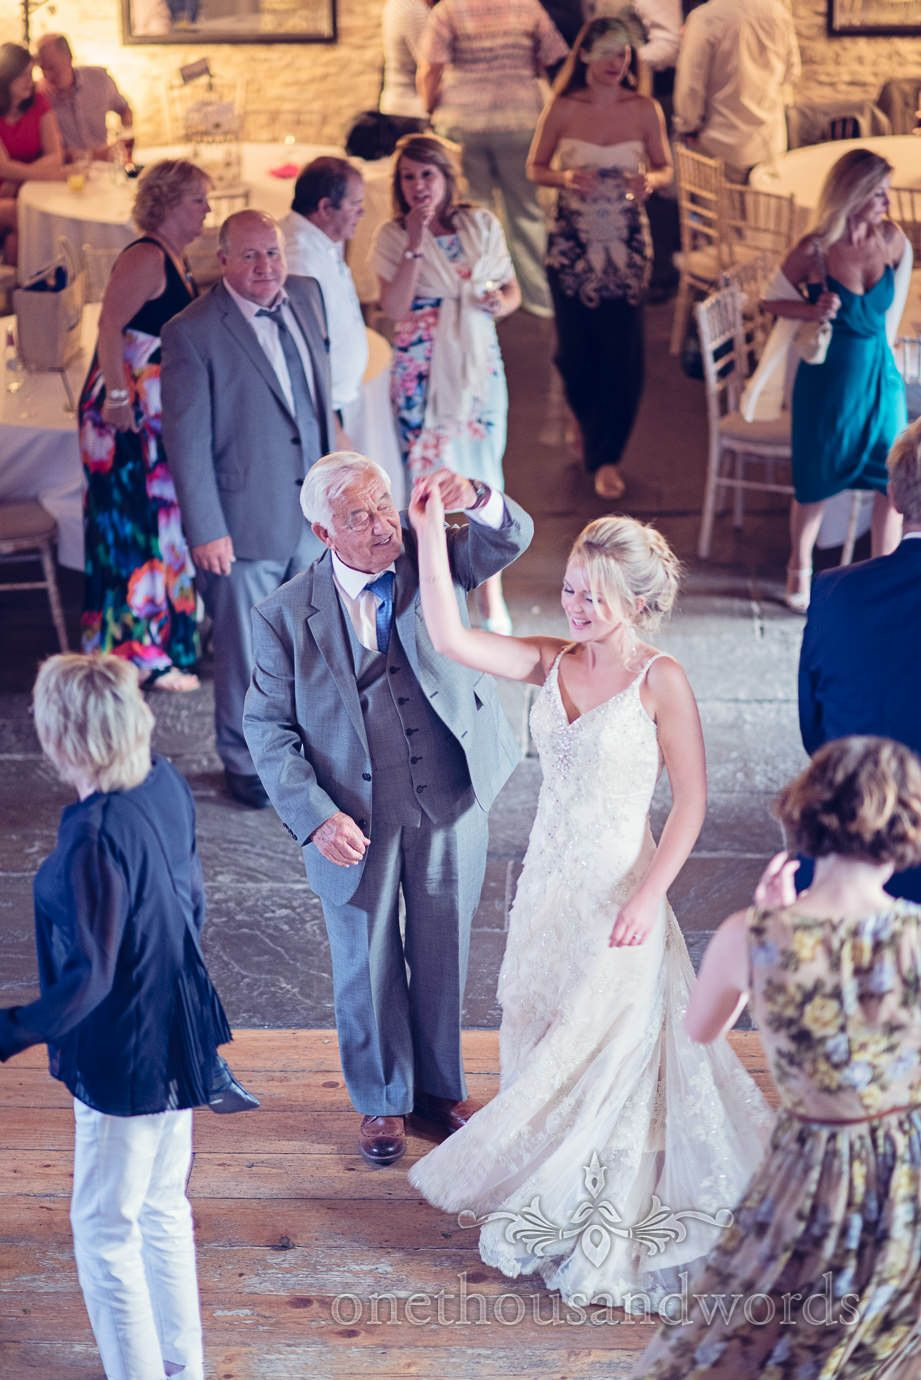 Bride and her grandfather dance from Kingston Country Courtyard Wedding Photographs. Photography by one thousand words wedding photographers